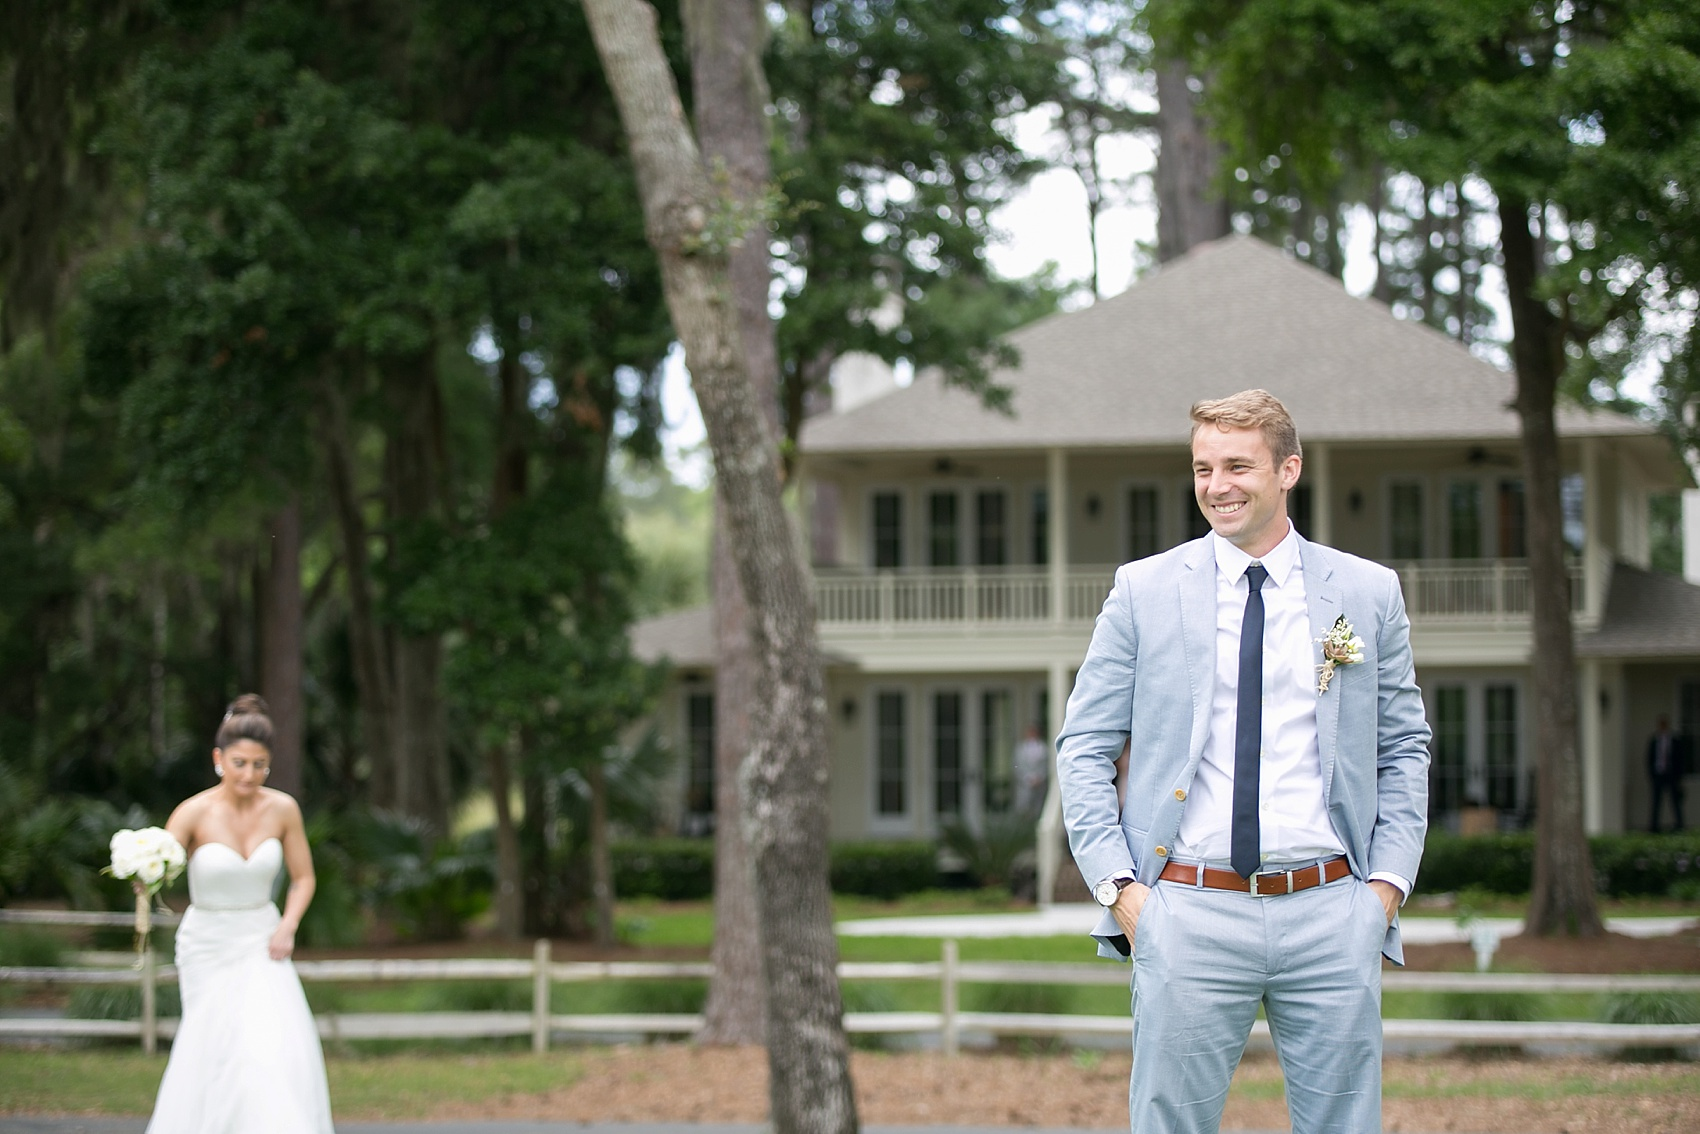 First look for the bride and groom on a golf course in Haig Point, South Carolina, off the coast of Hilton Head. Photos by Mikkel Paige Photography.